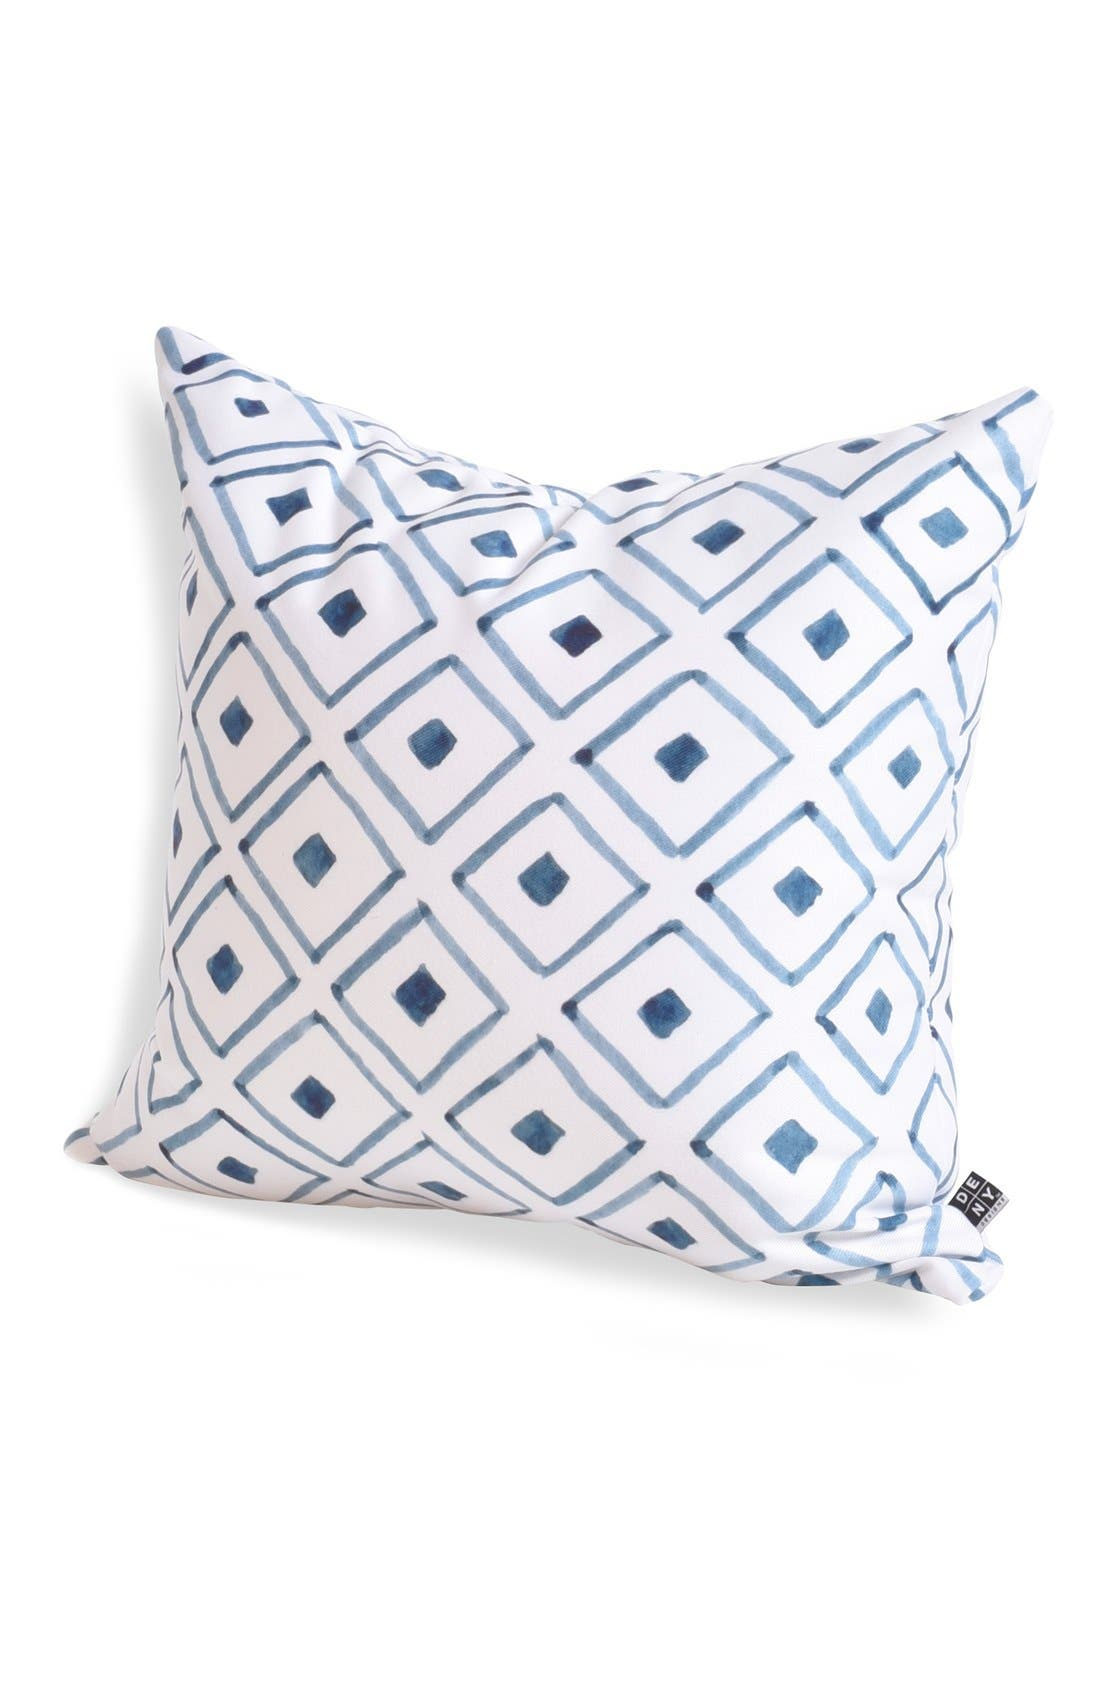 'Social Proper Ascot' Pillow,                             Main thumbnail 1, color,                             Blue